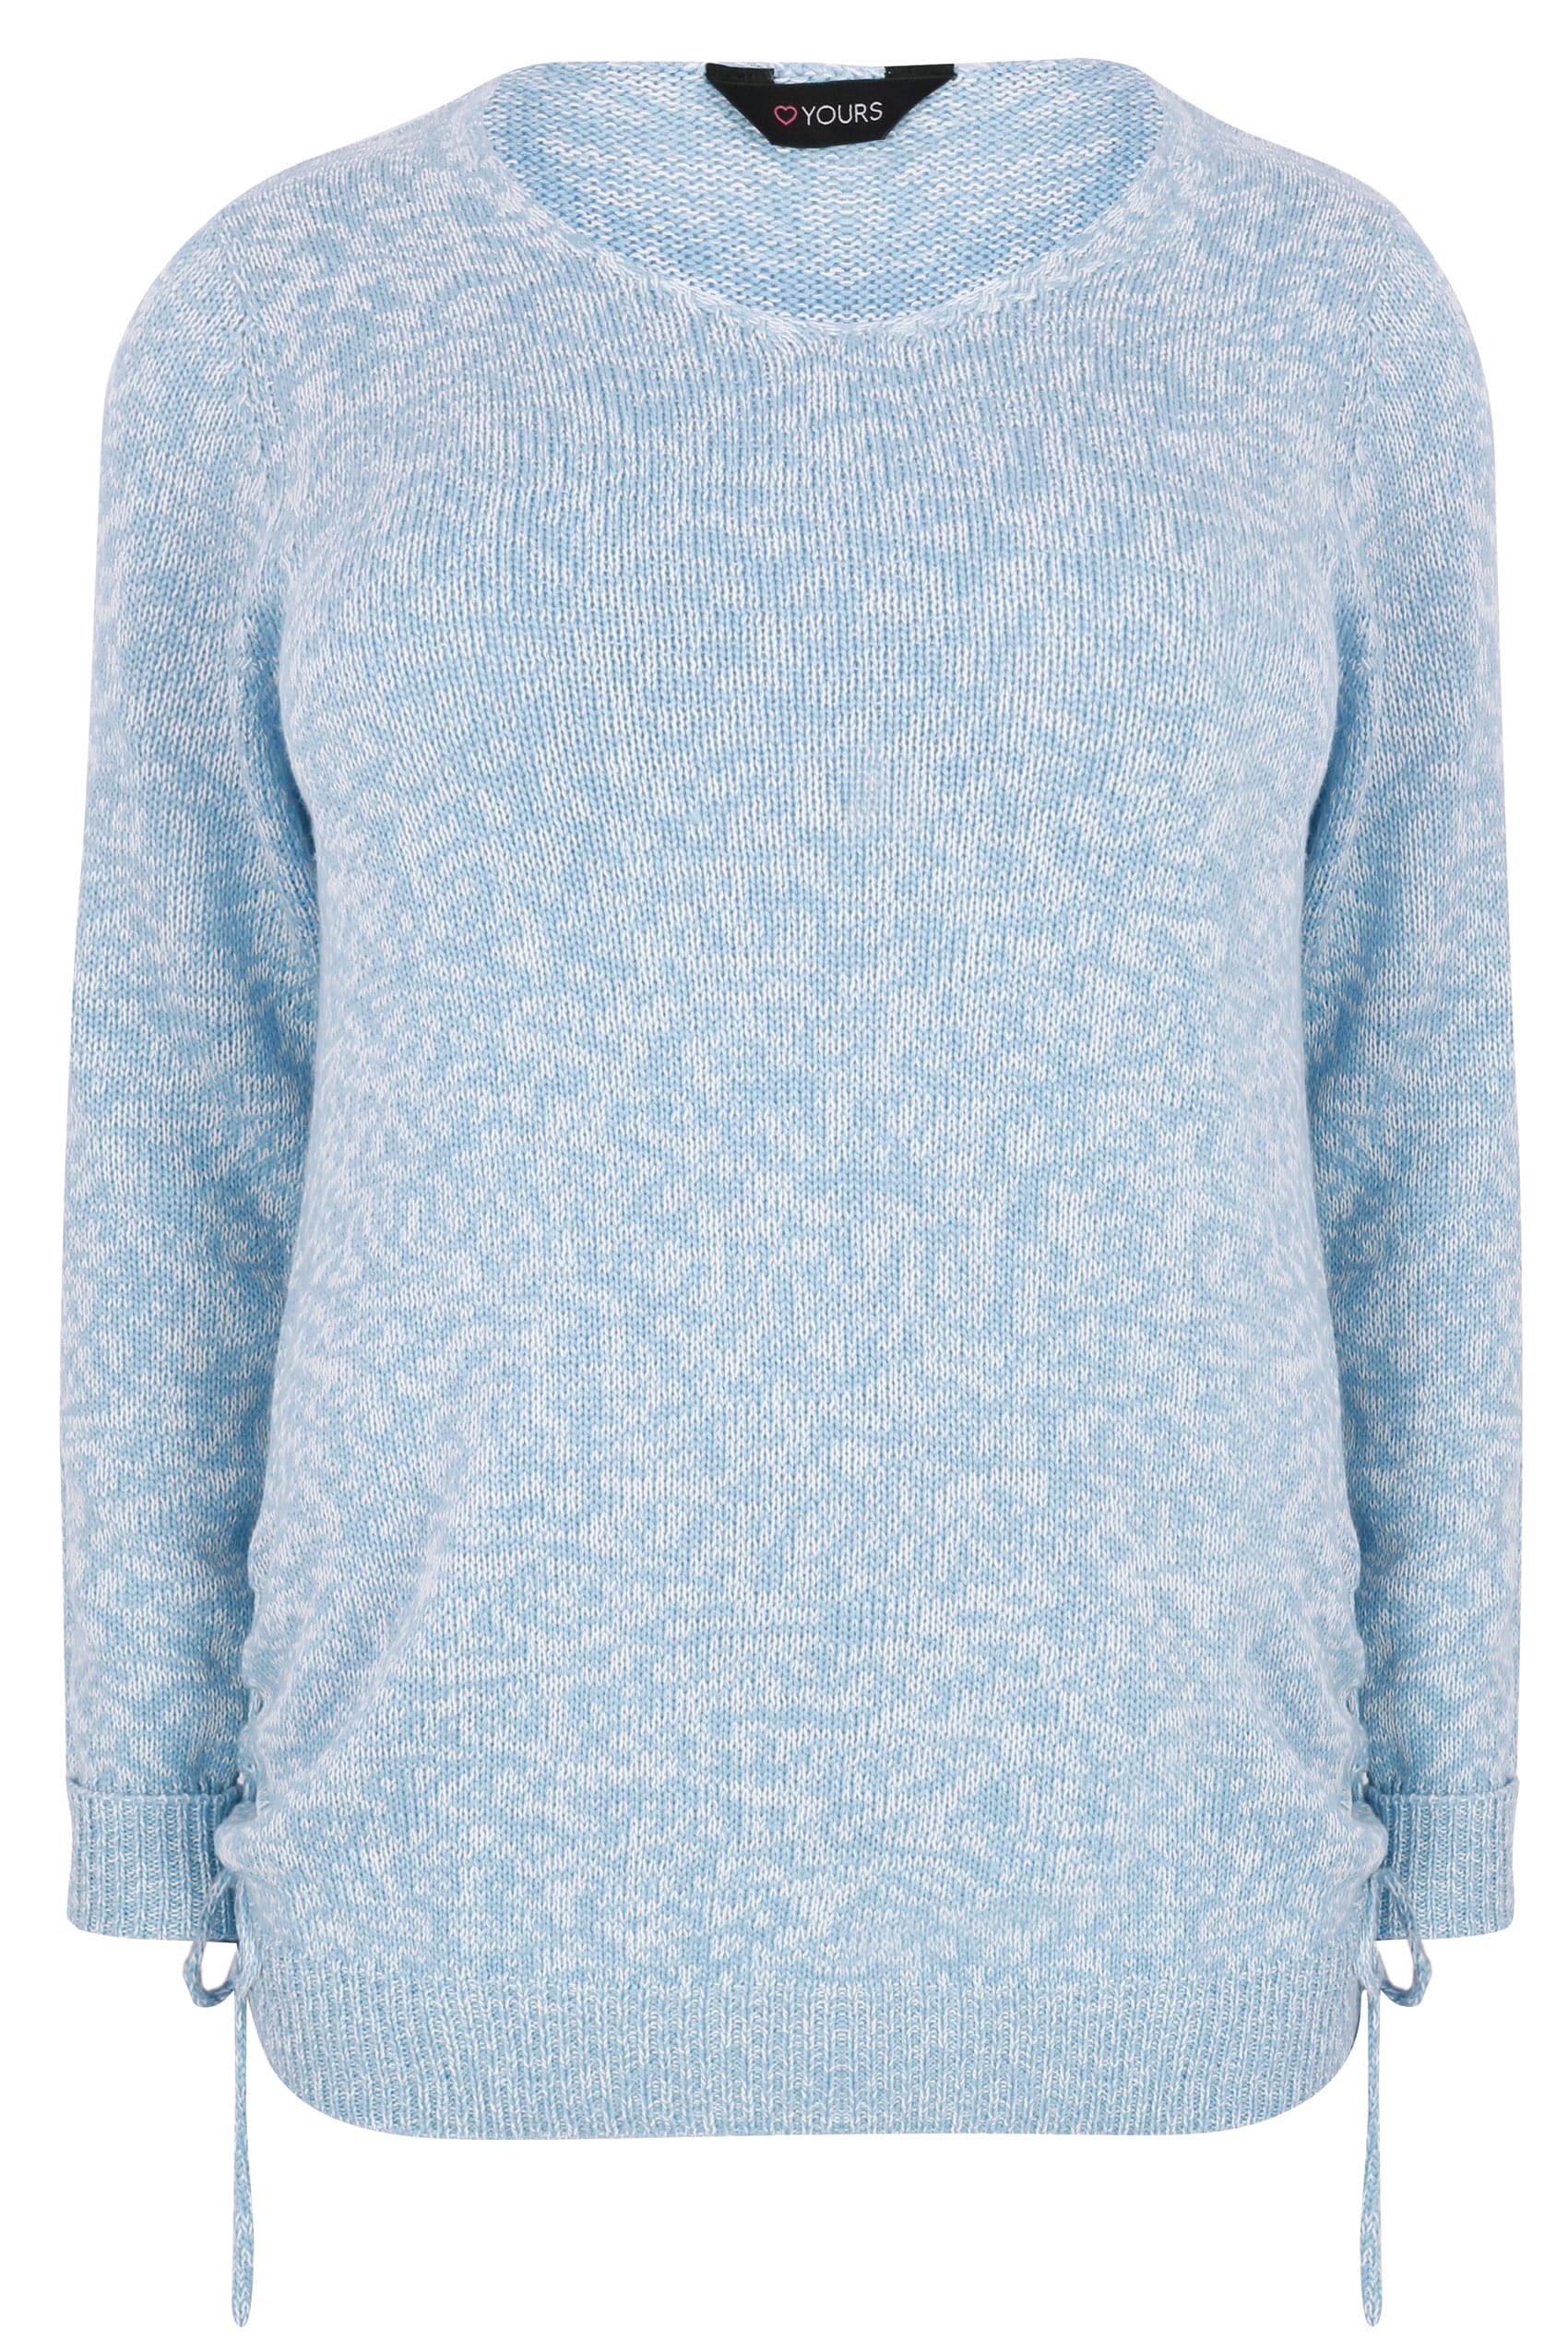 Light Blue Knitted V-Neck Jumper With Lace Up Sides, Plus ...